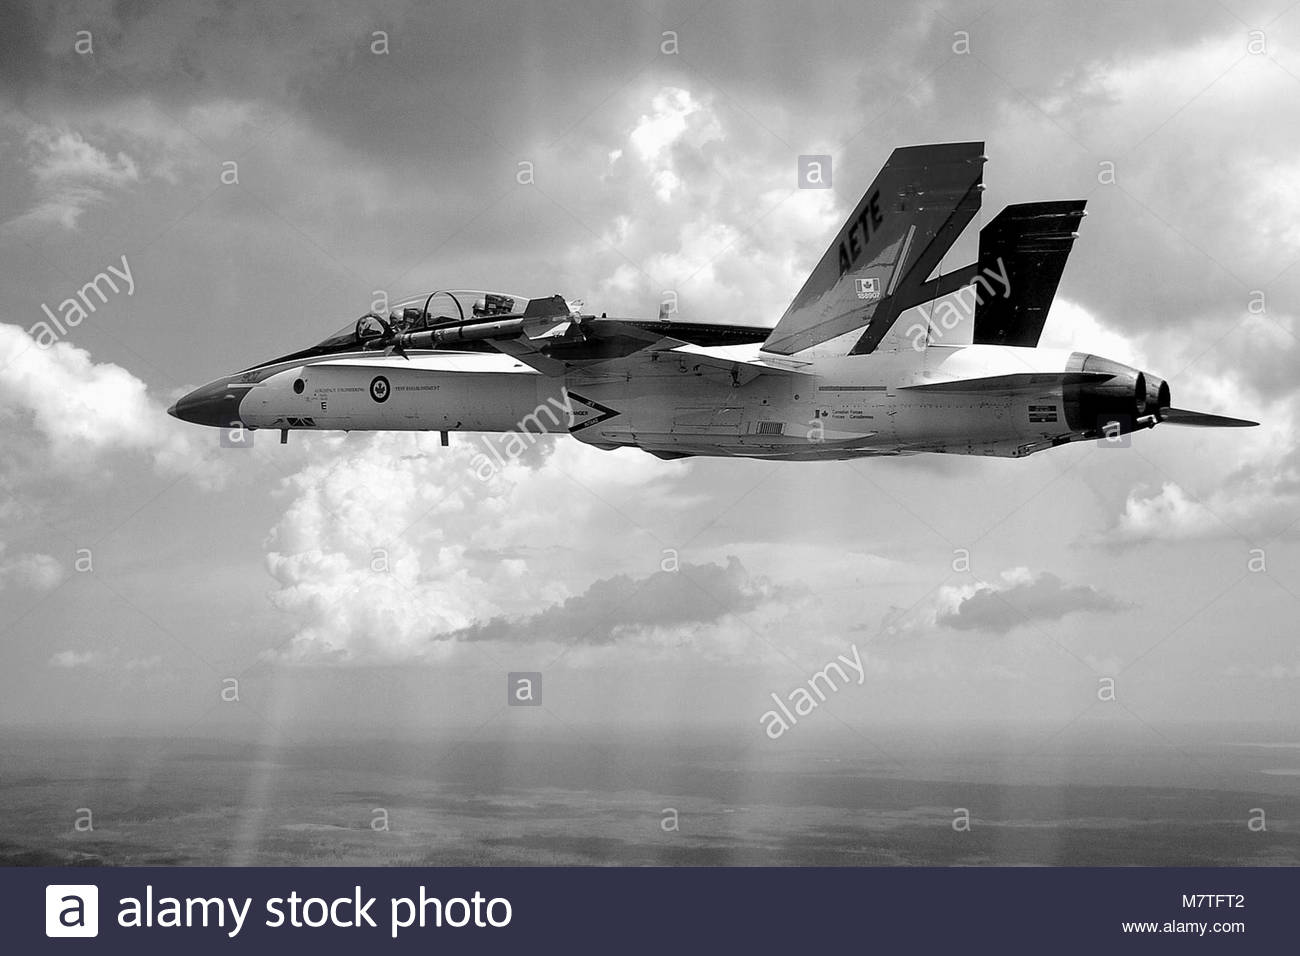 A CF-18 Hornet Colour Bird in flight, from the Aerospace. AE2004-0211-001a  17 July  / juillet 2004 CFB / BFC Cold - Stock Image